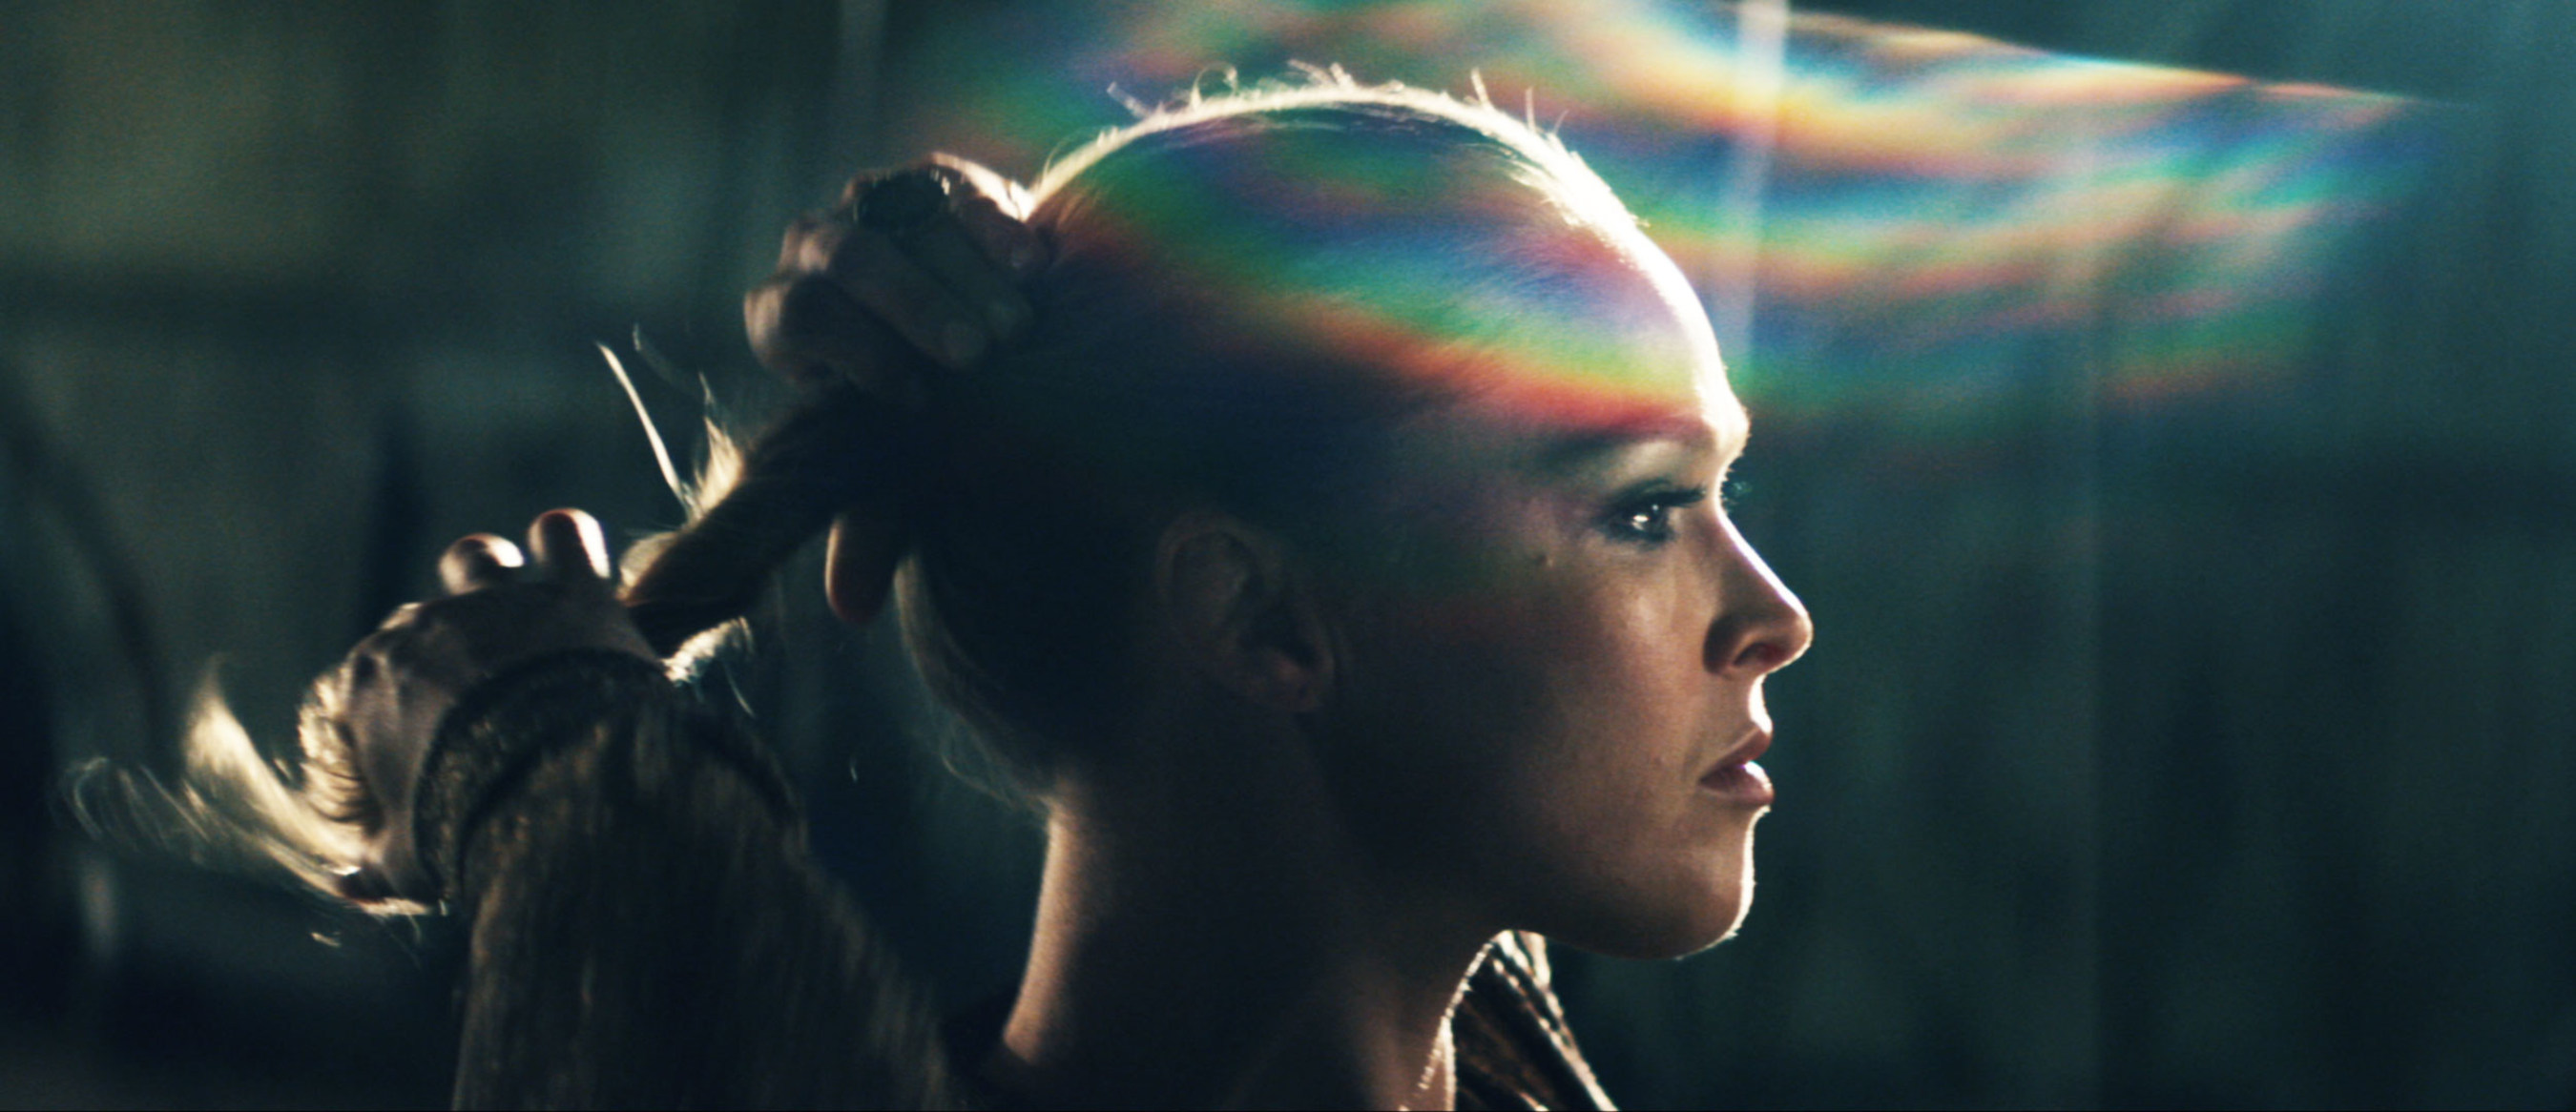 REEBOK LAUNCHES NEW PHASE OF ITS BE MORE HUMAN CAMPAIGN FEATURING RONDA ROUSEY